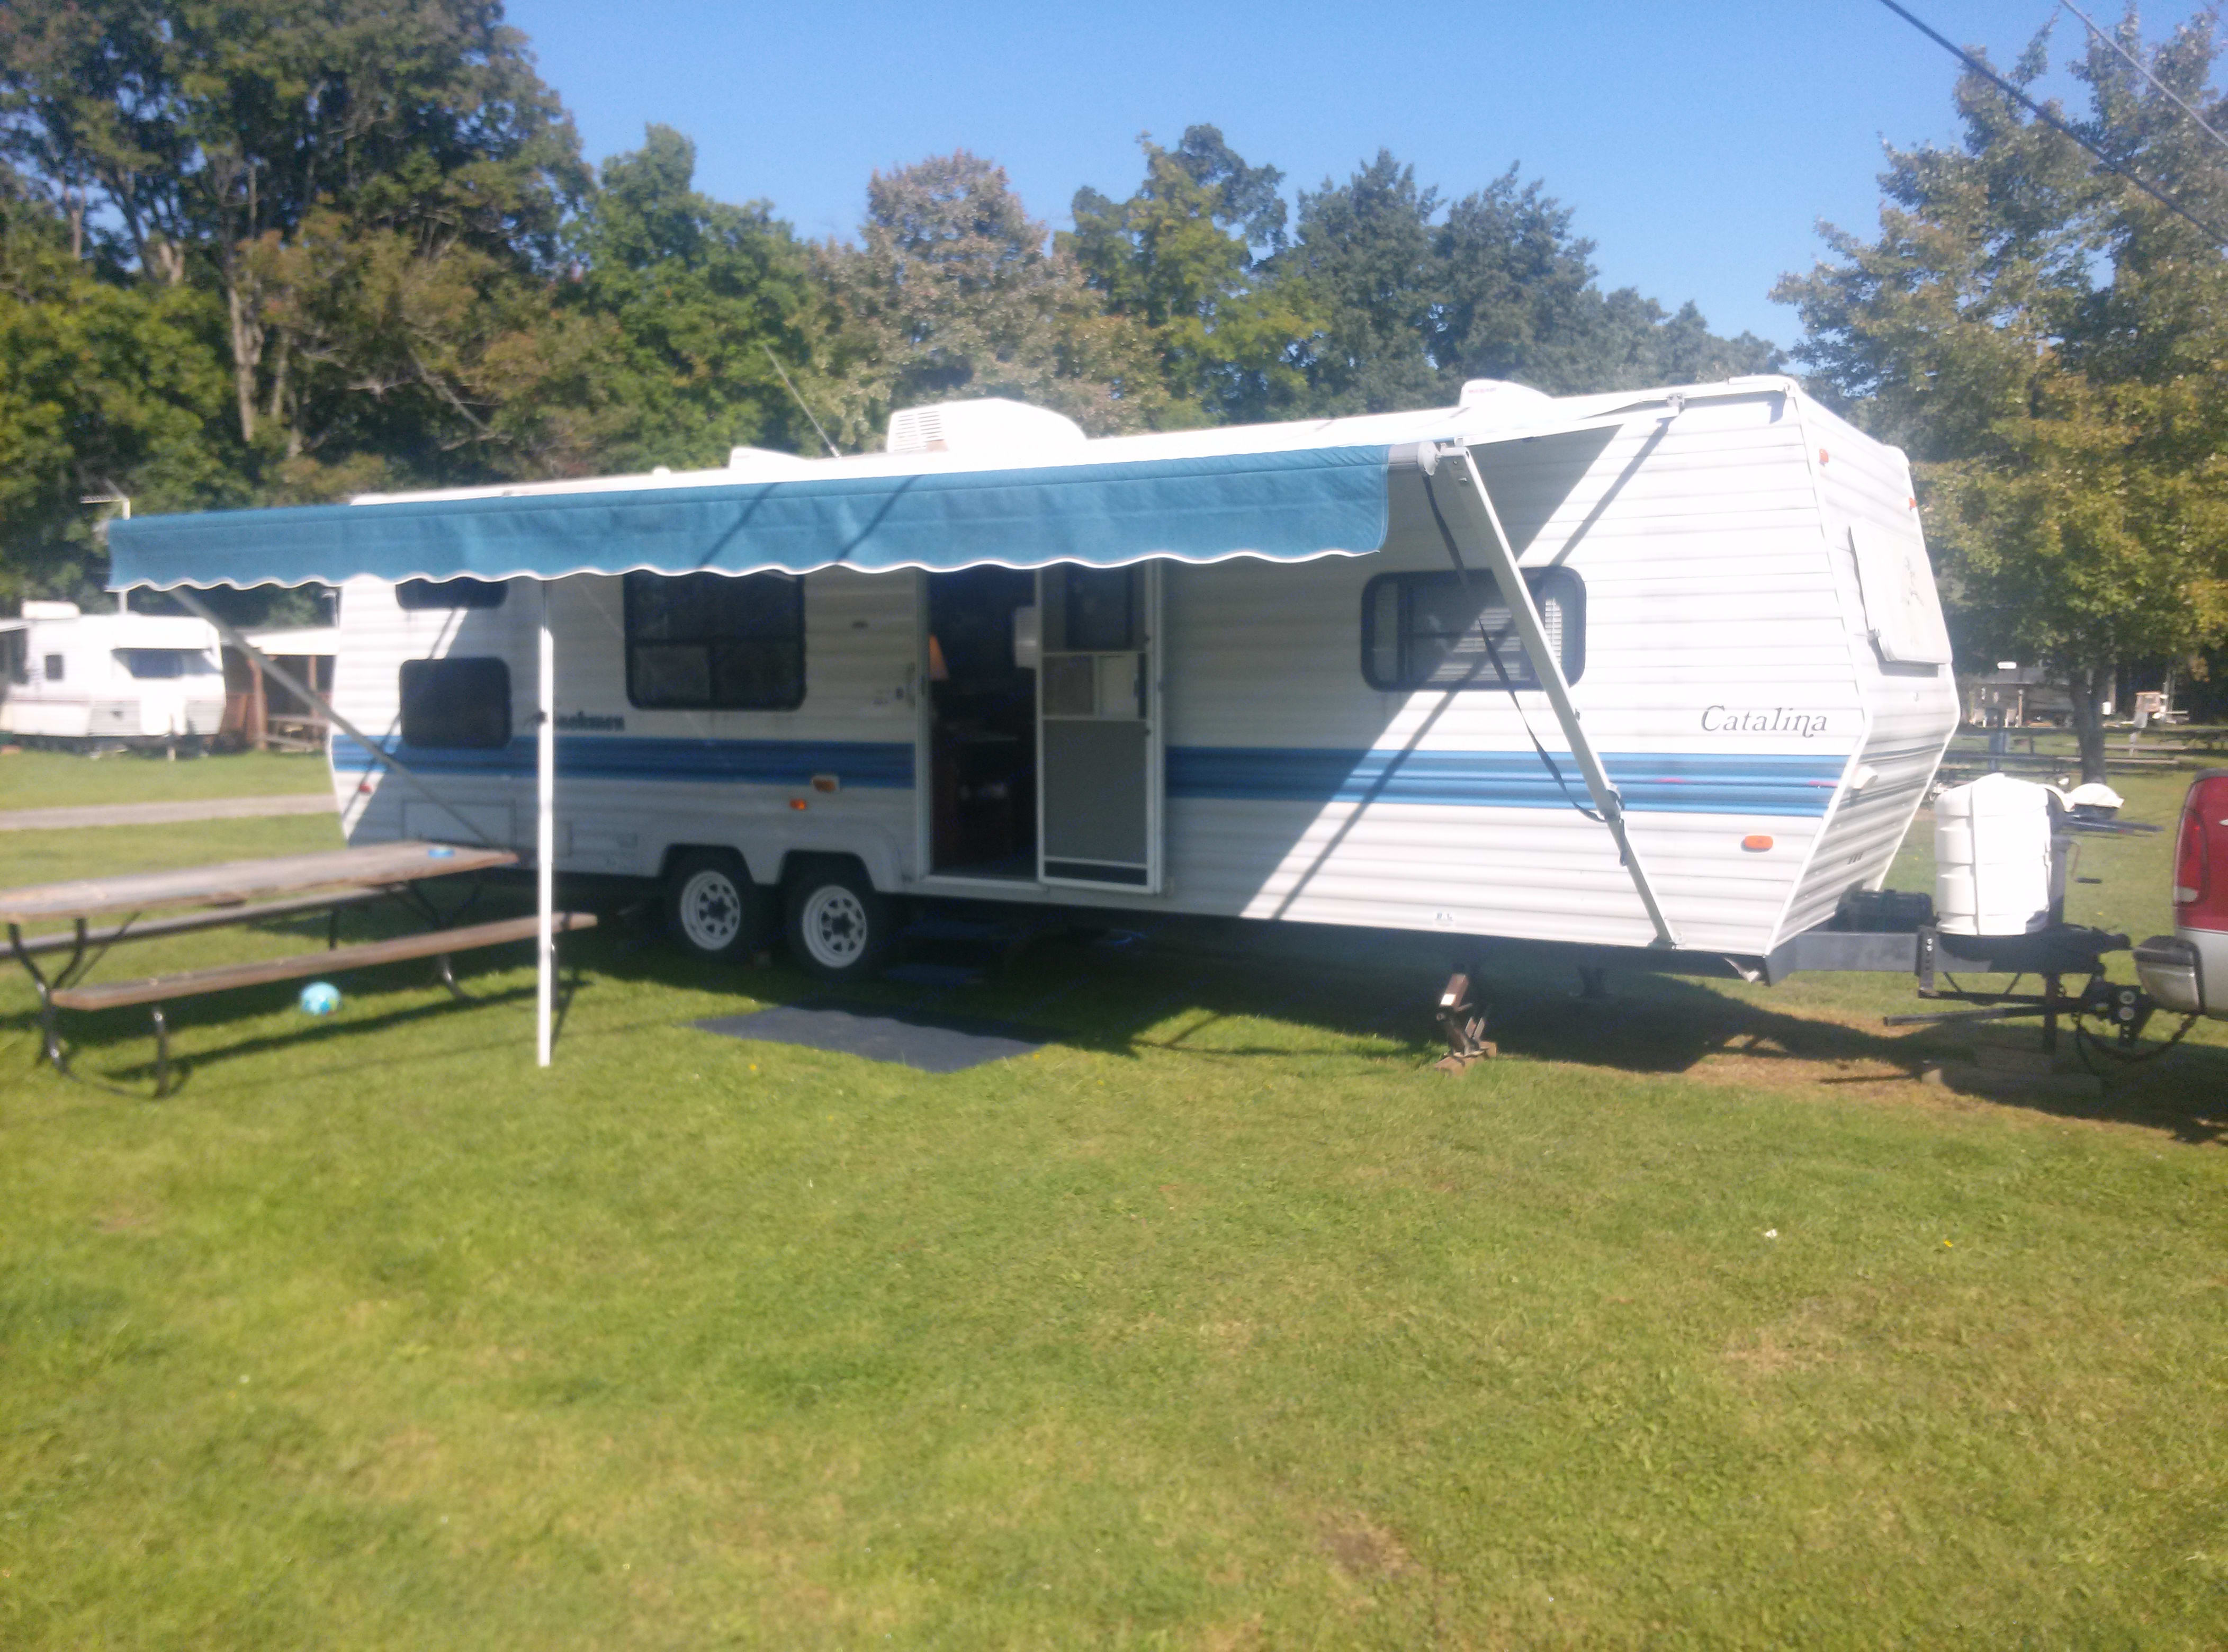 29 foot long camper.  (33 ft from tongue to tail).  Long newer awning gives lots of shade.. Coachmen Catalina 1994